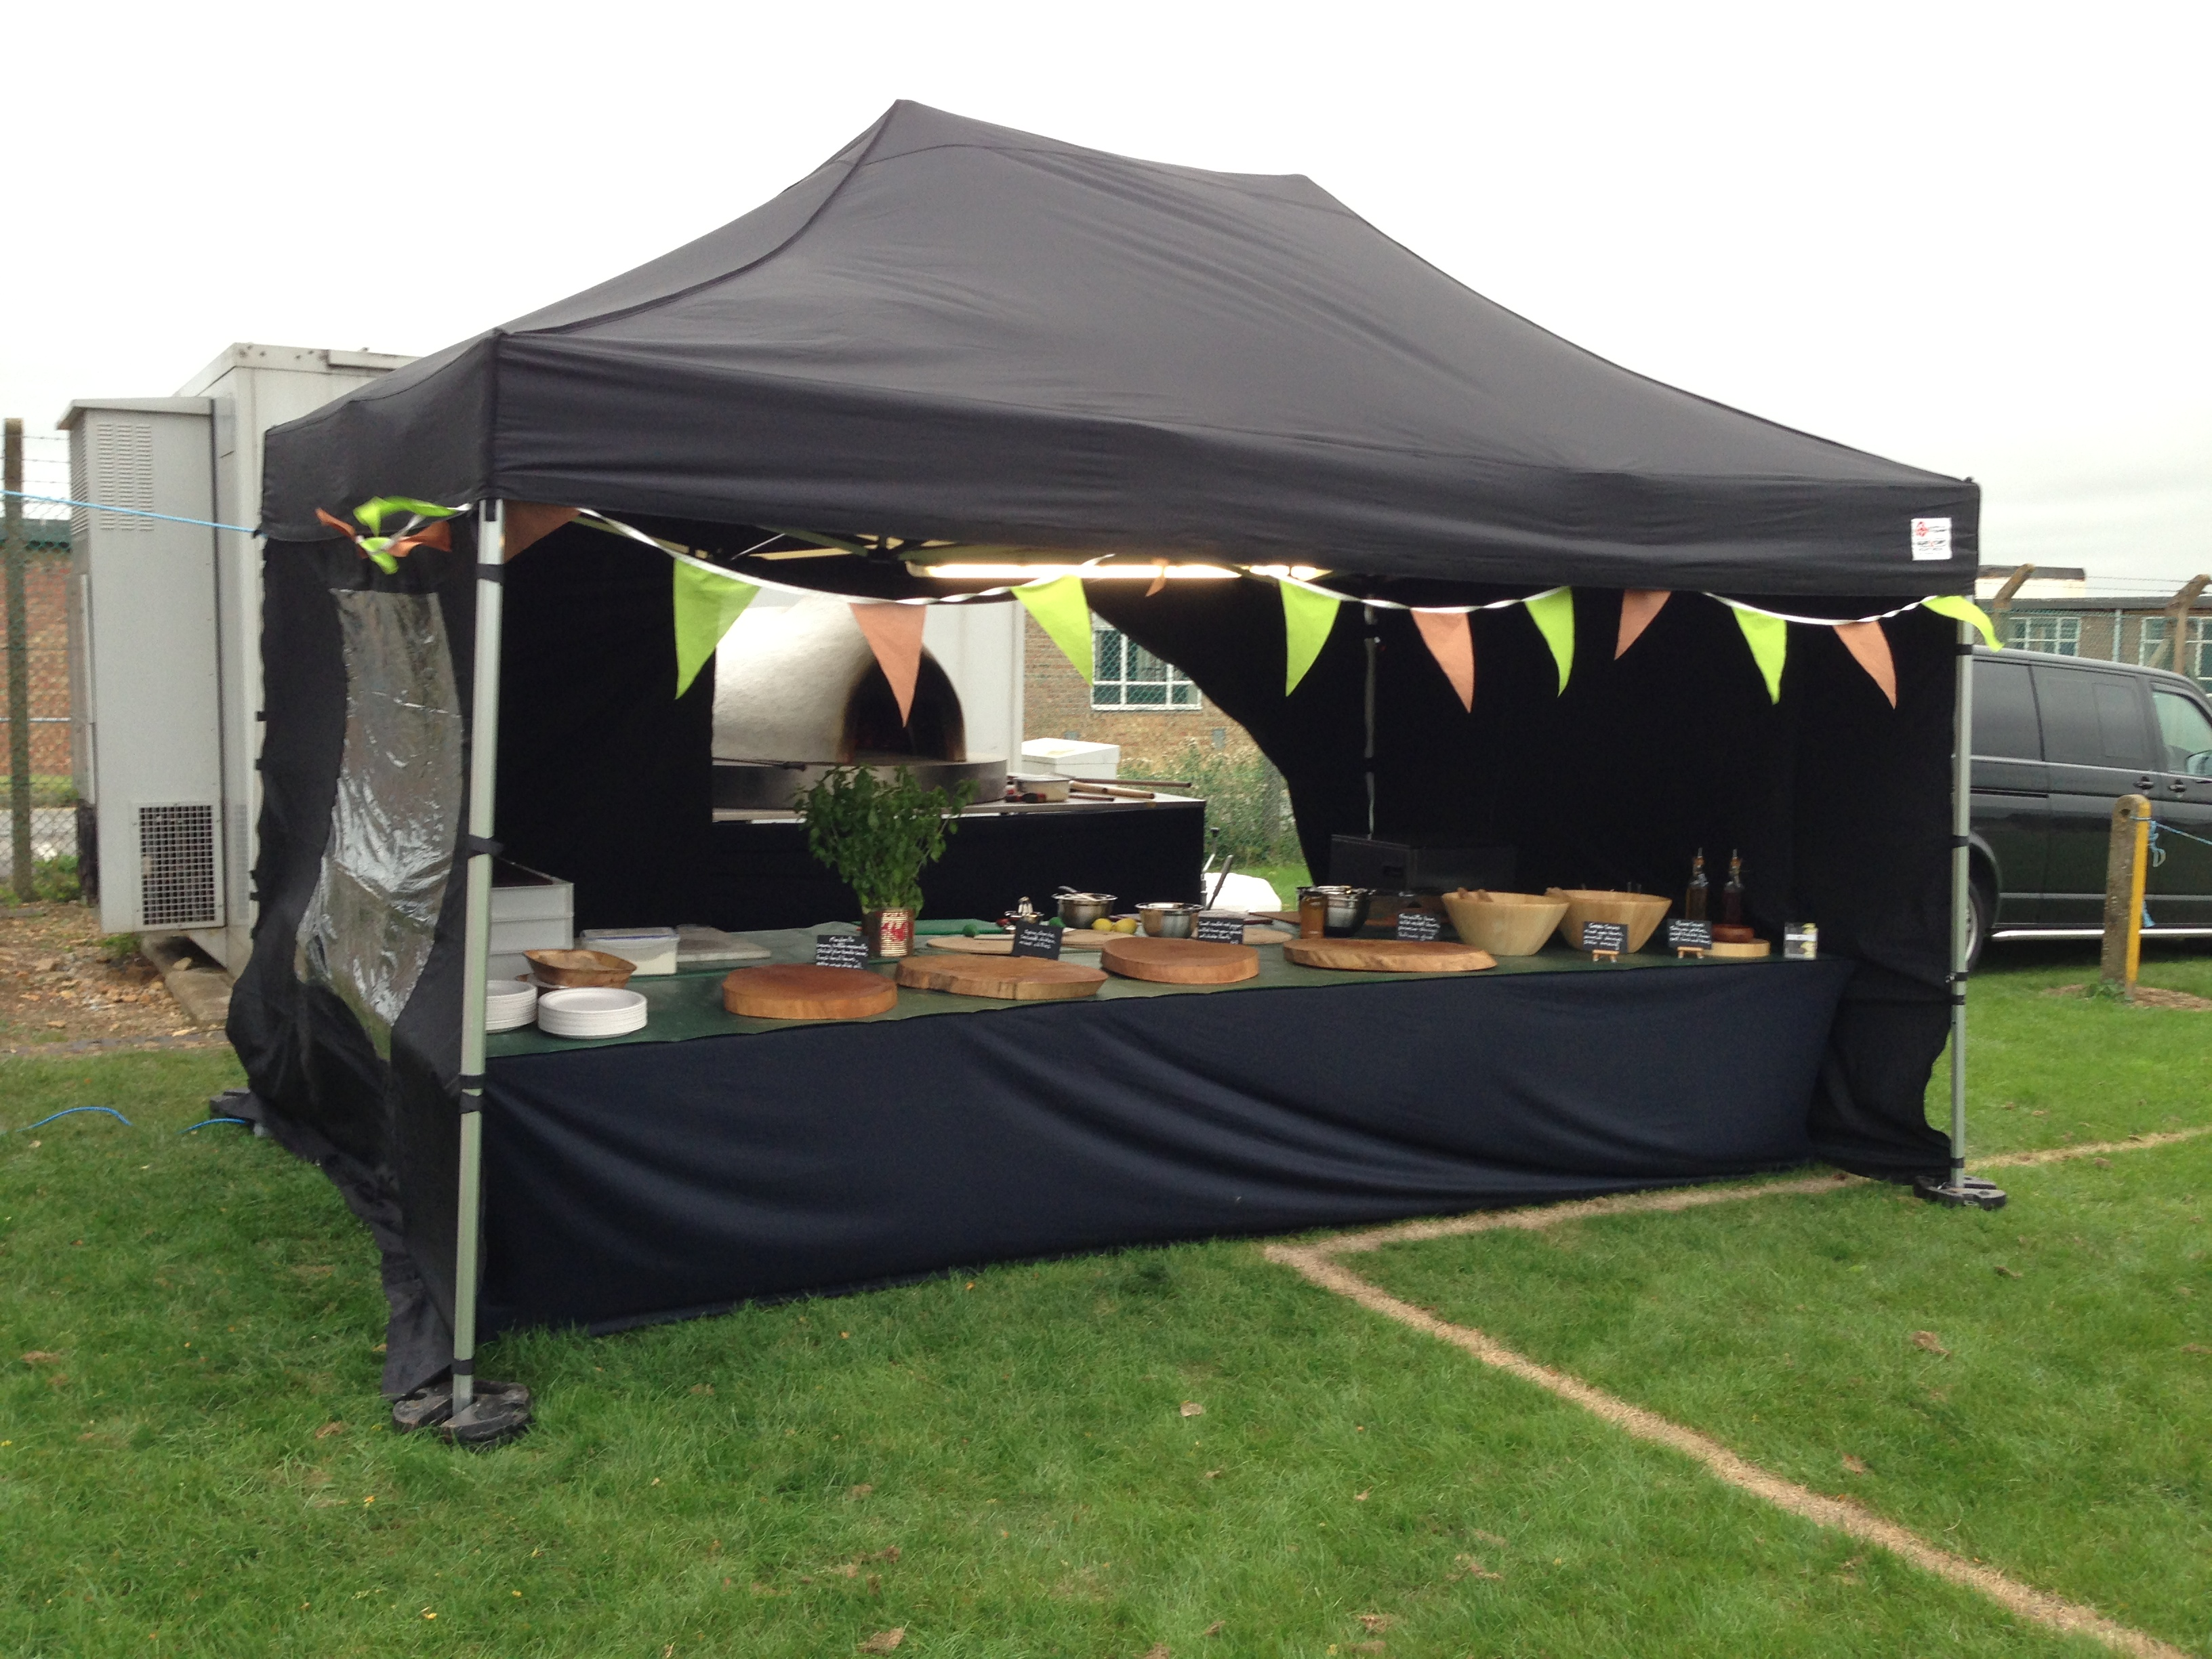 Pizza Monkey catering tent with wood fire oven